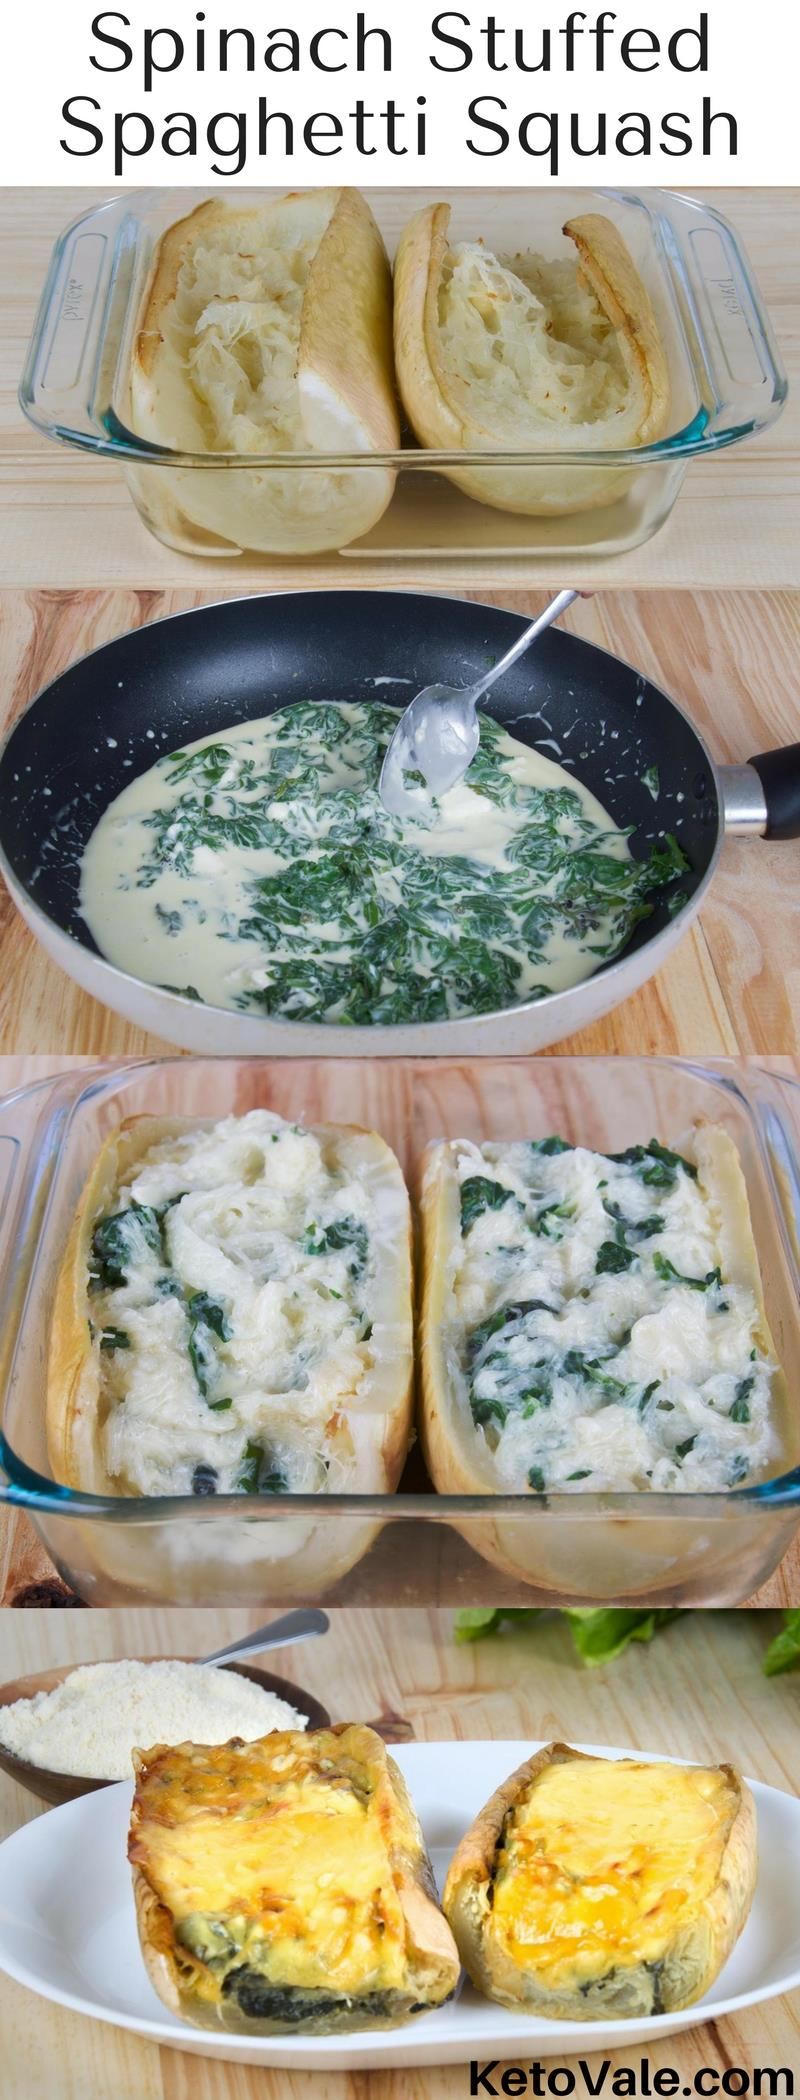 Spinach Stuffed Spaghetti Squash Recipe